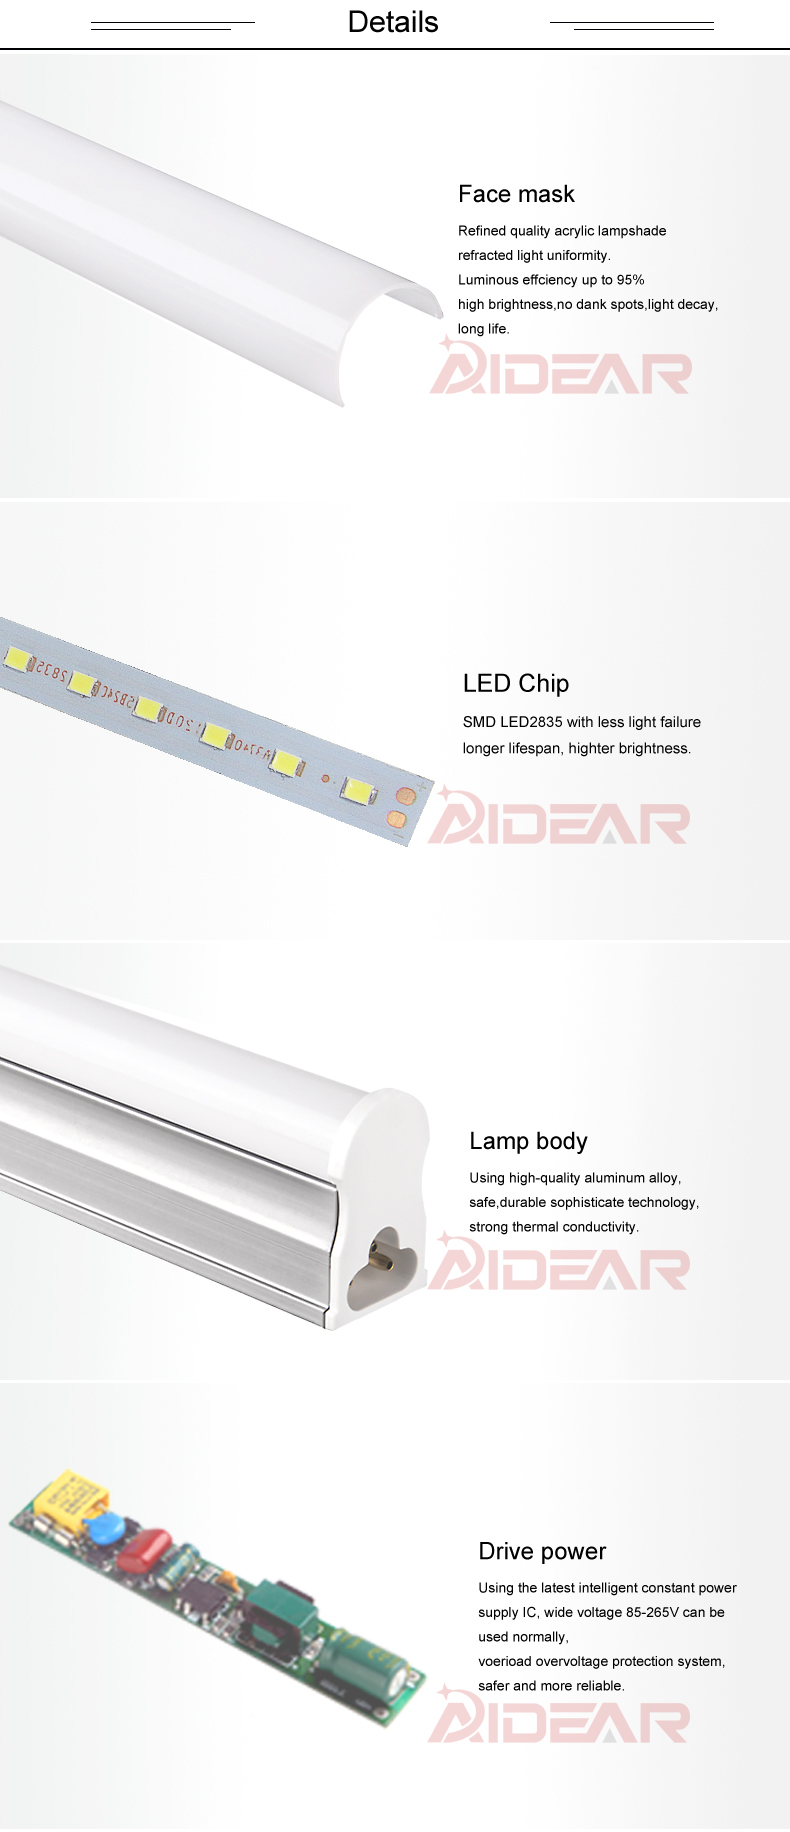 led shop light 4ft t5 led tube lights ceiling shop lighting fixture for garage kitchen room power wire with switch stock in usa [ 790 x 1832 Pixel ]